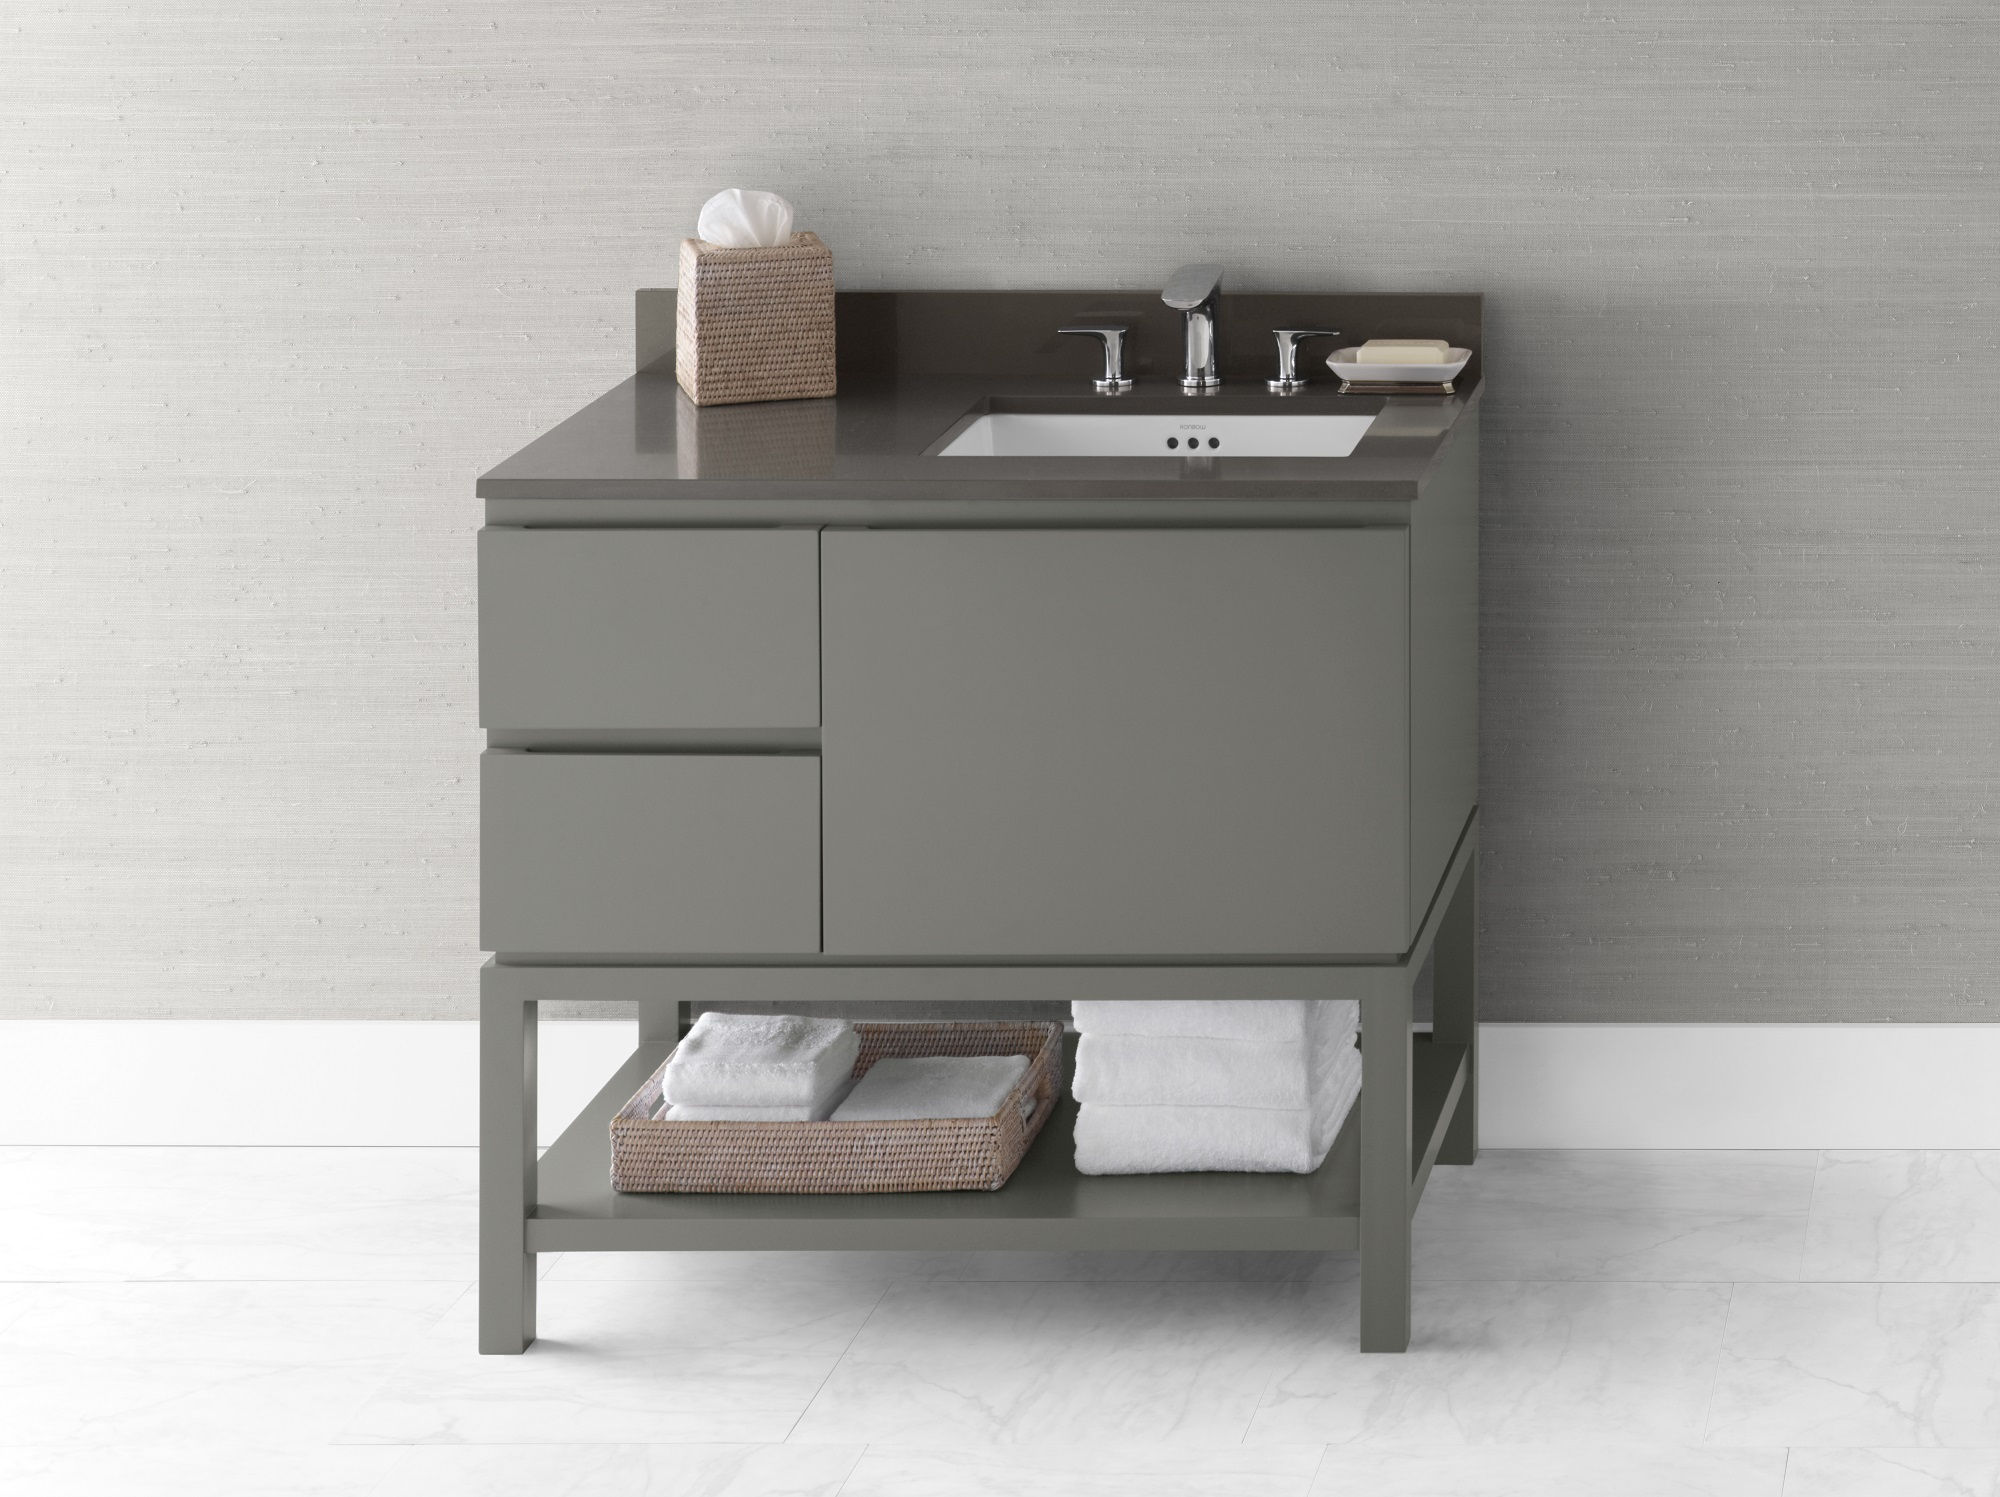 Ronbow 036036 R E12 Chloe 36 Bathroom Vanity Base Cabinet In Slate Gray Large Drawer On Right 036036 R E12 Snyder Diamond